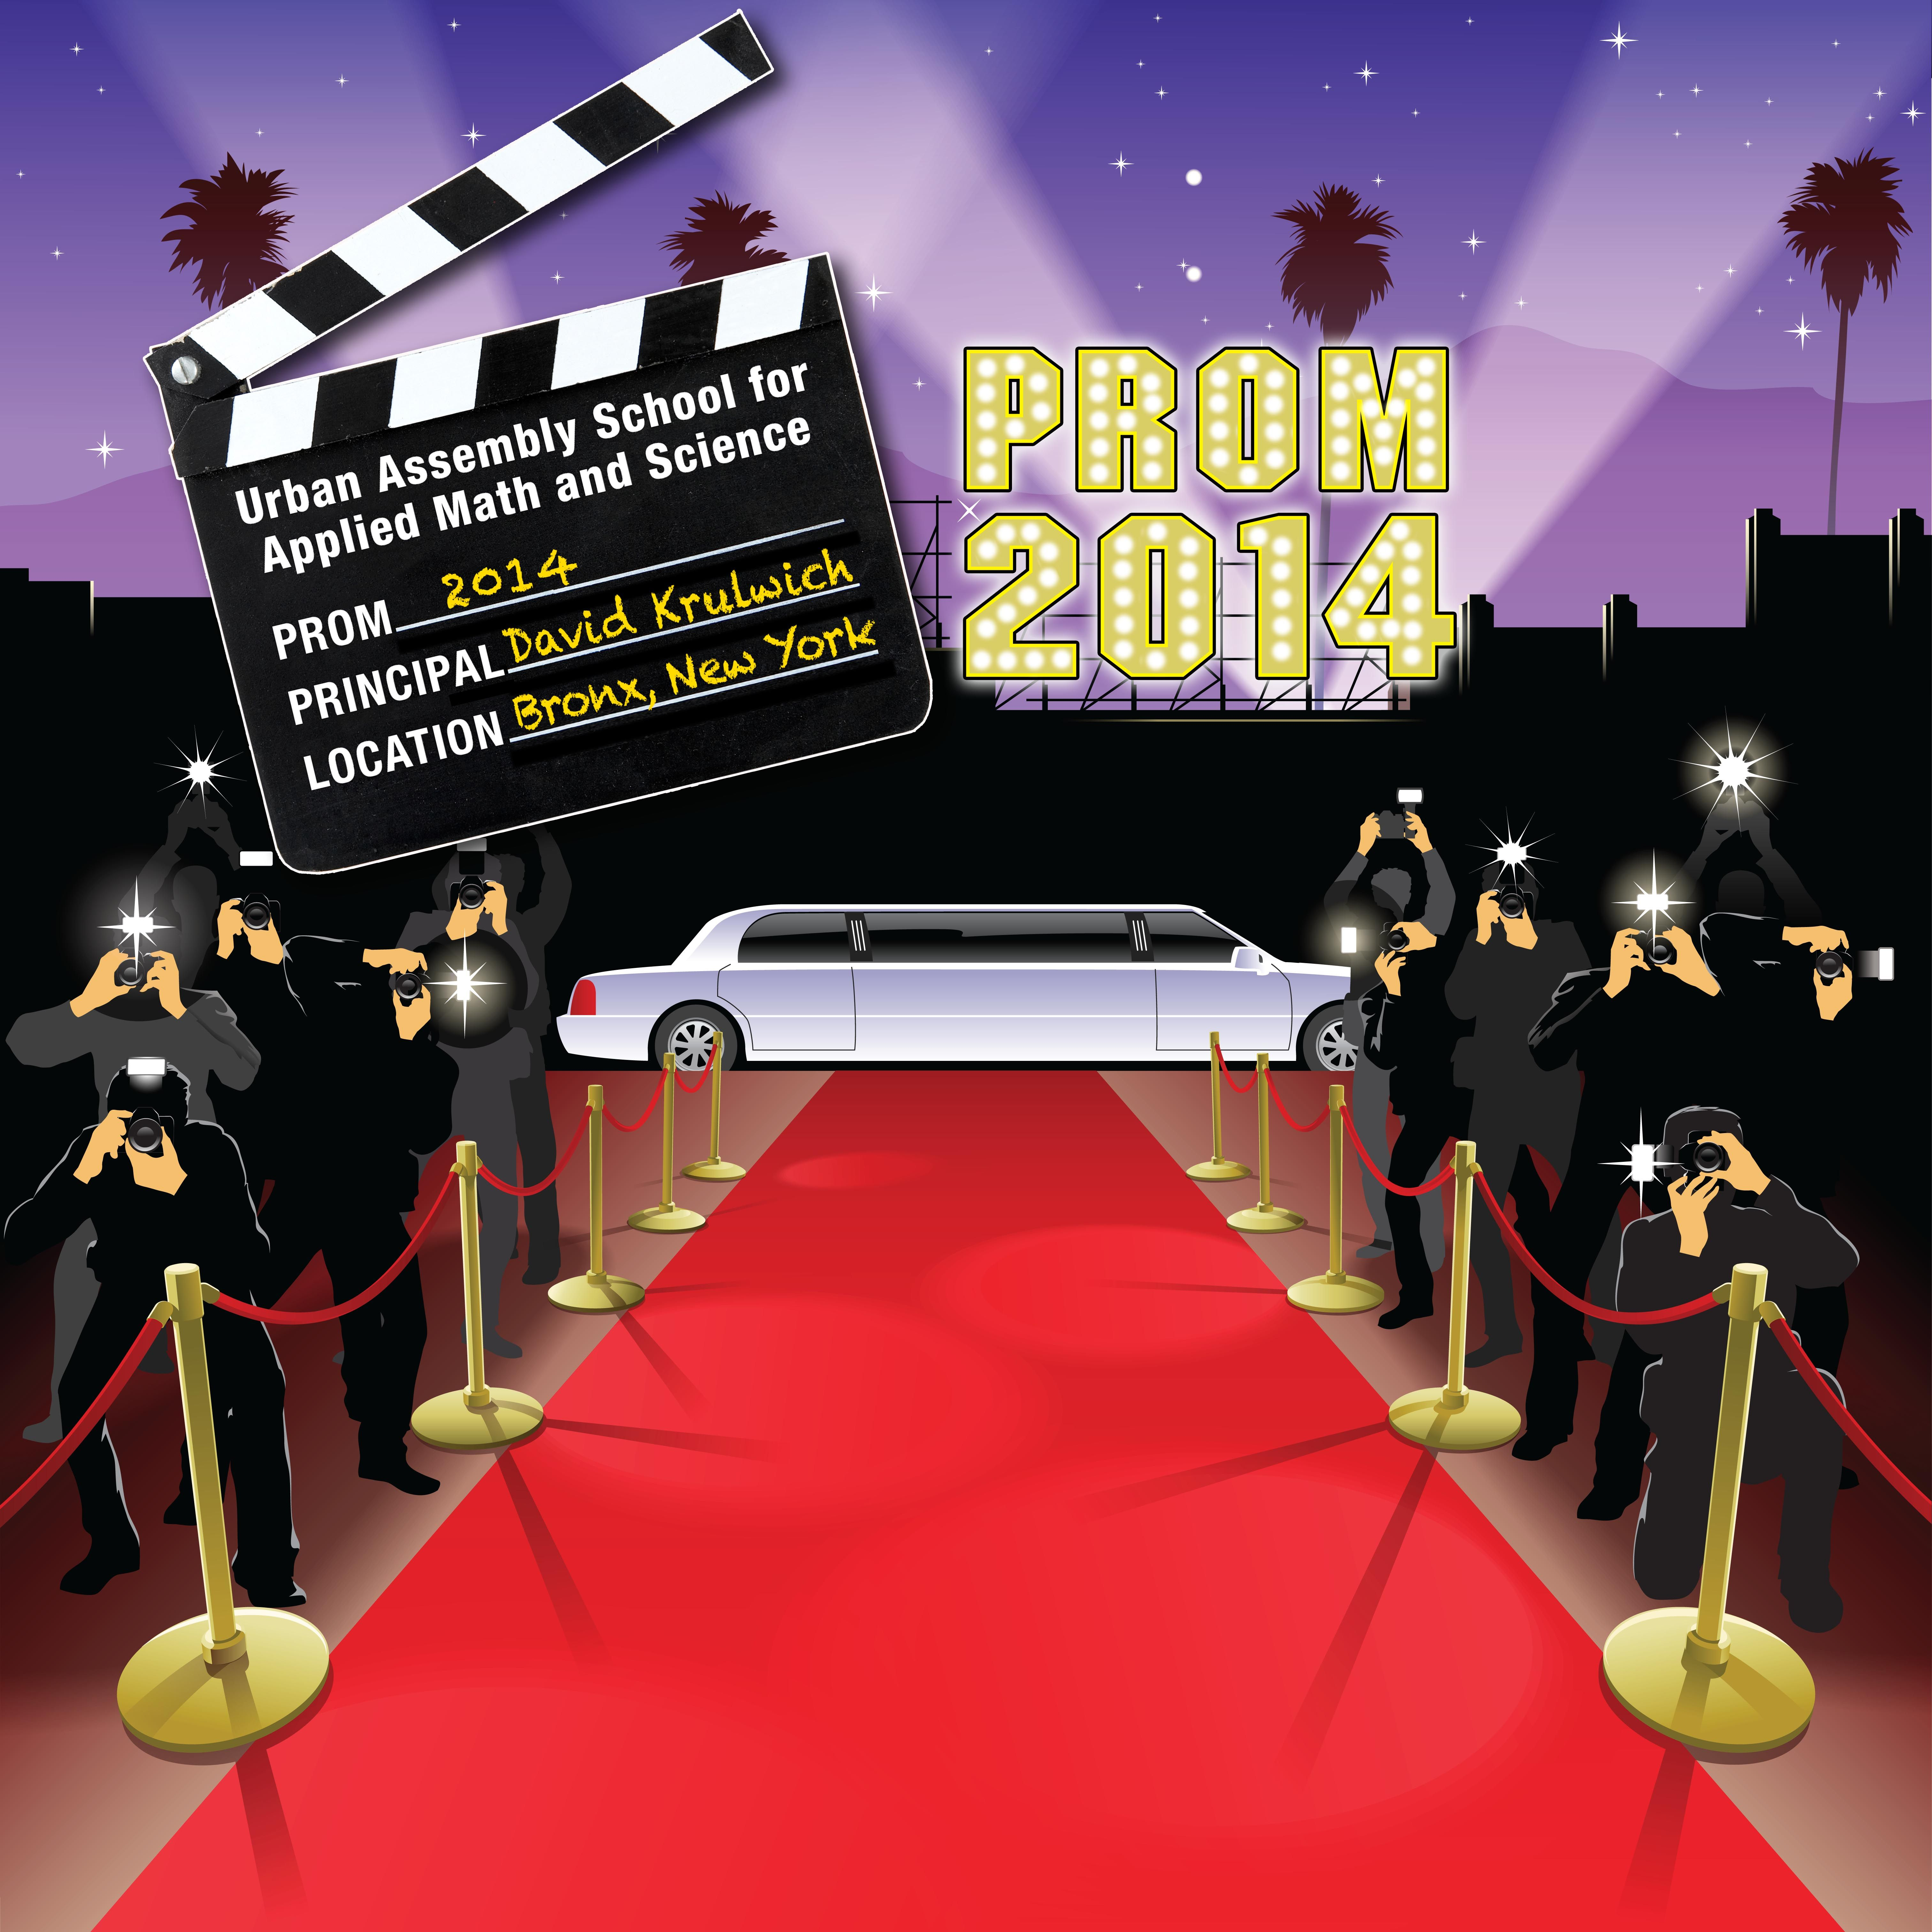 Pin By Christie Hagerman On Prom - Hollywood